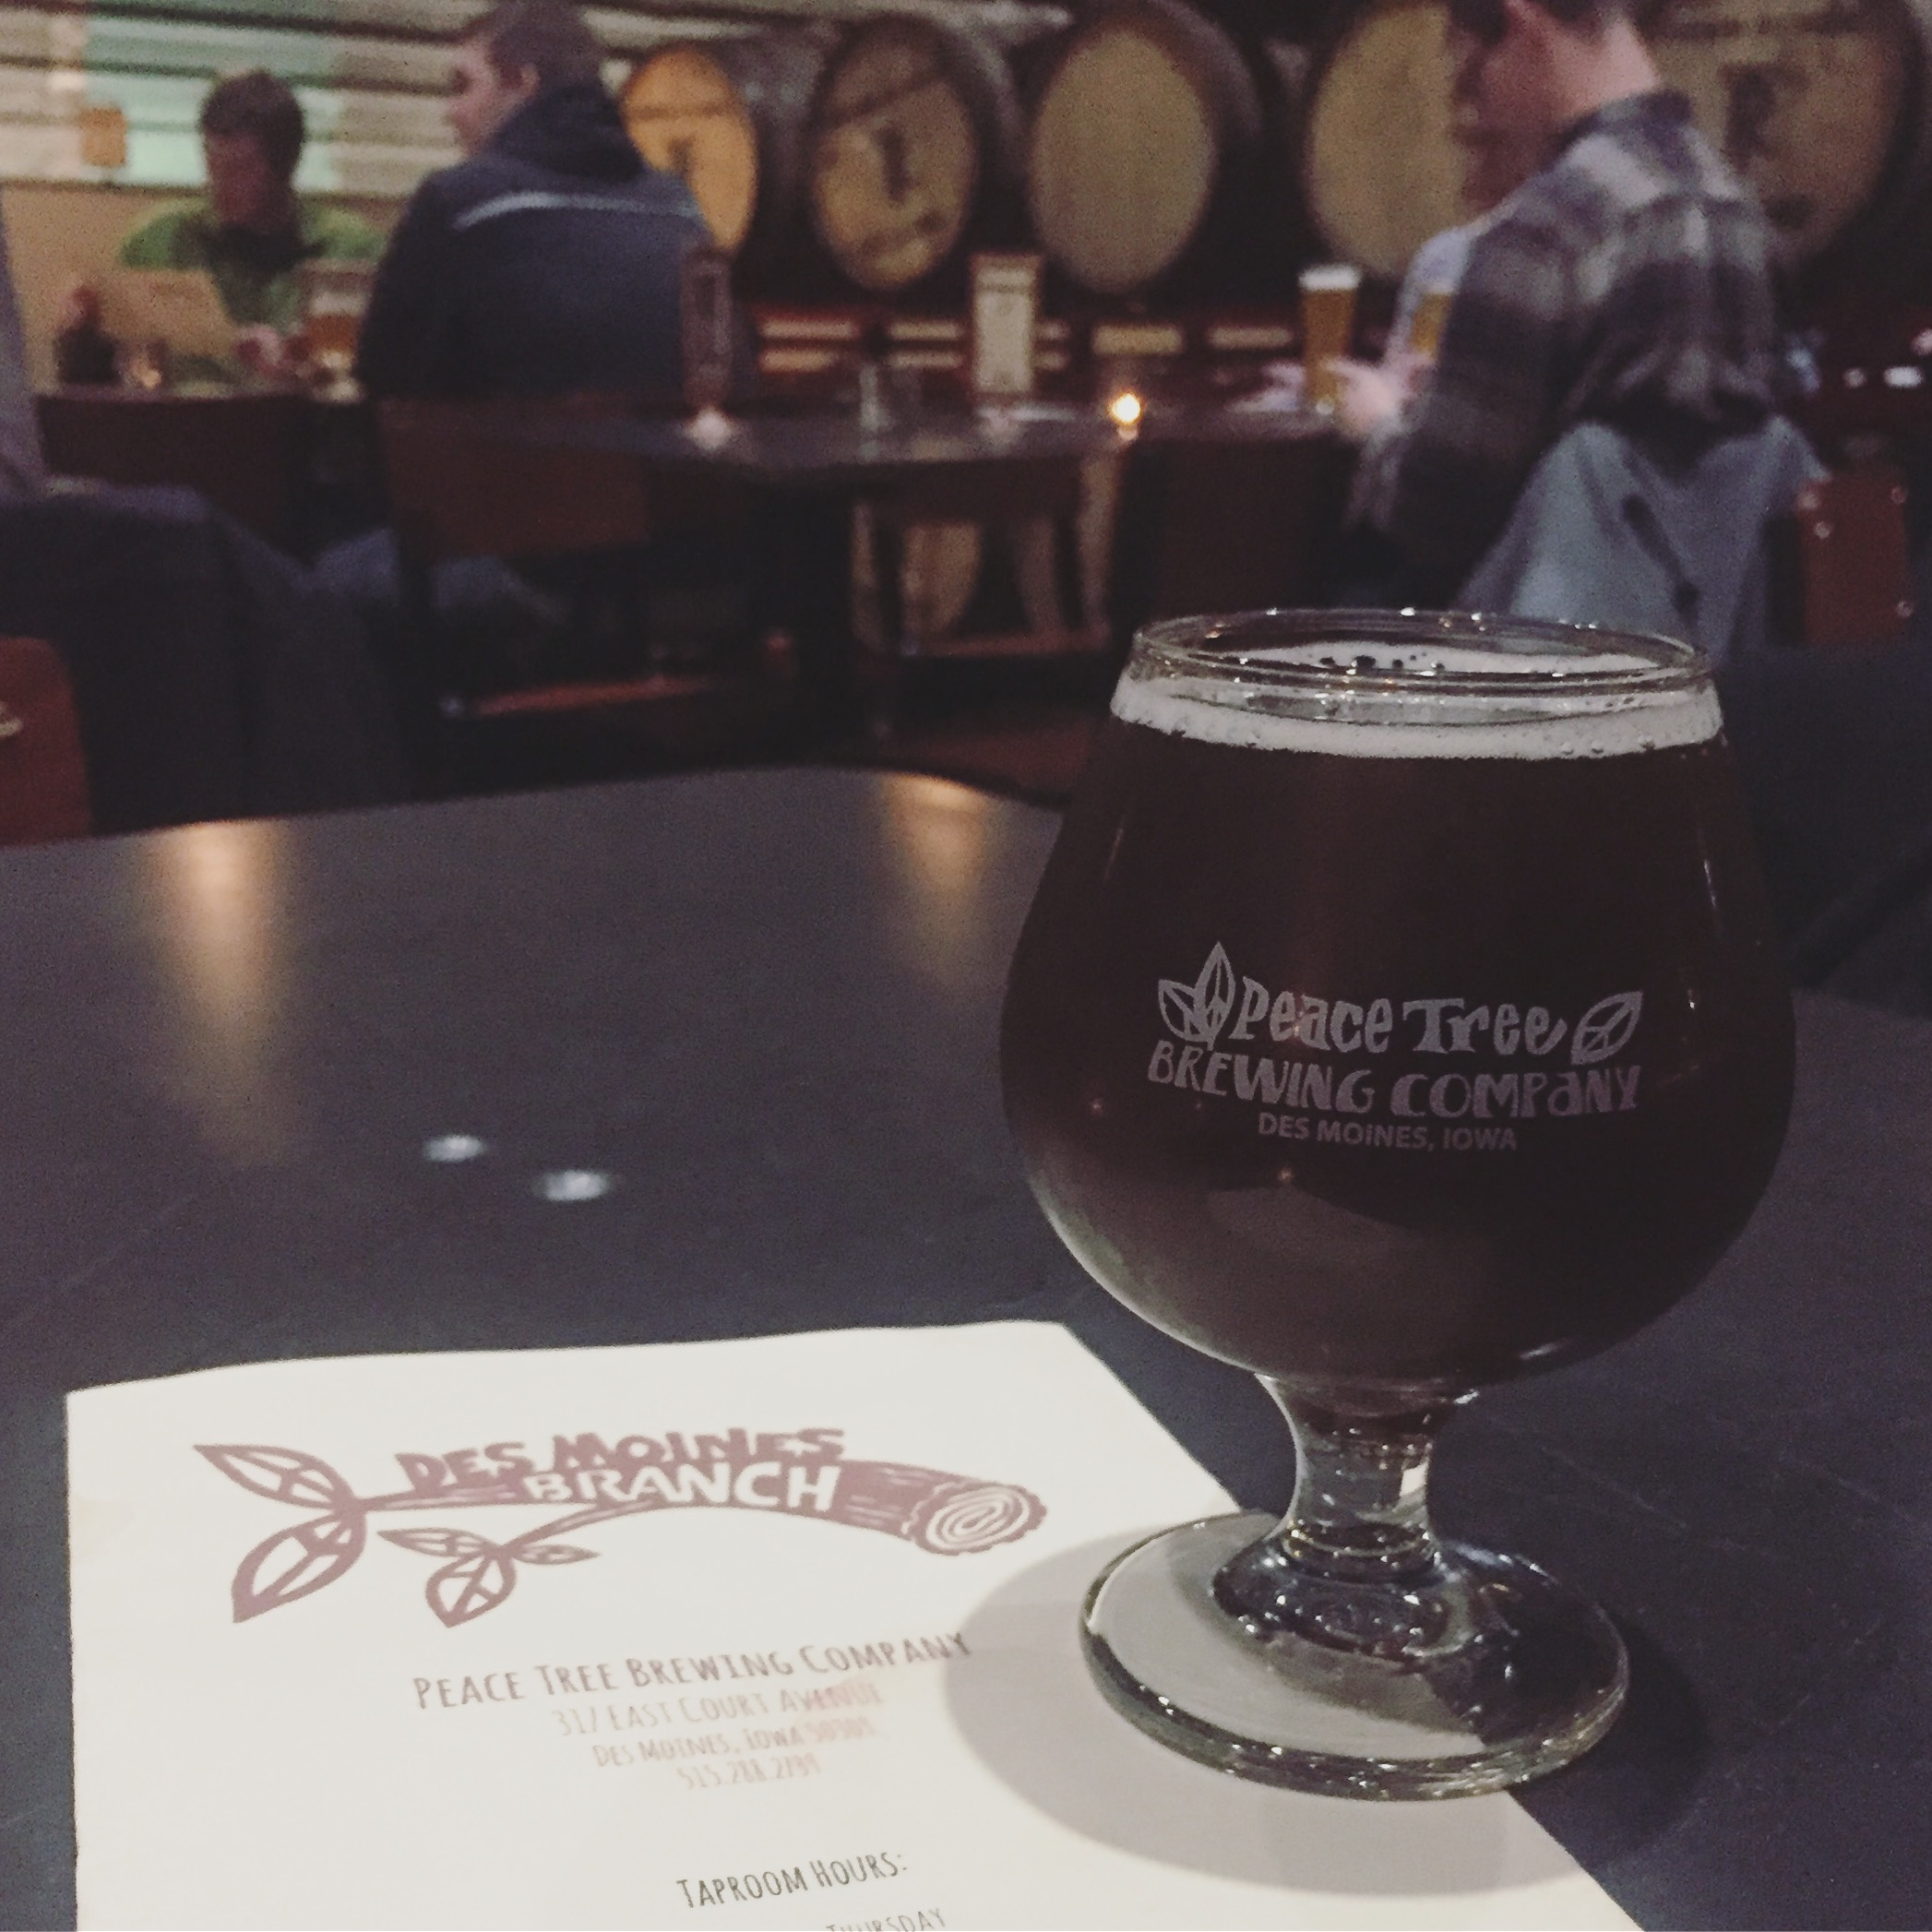 Peace Tree Brewing Co